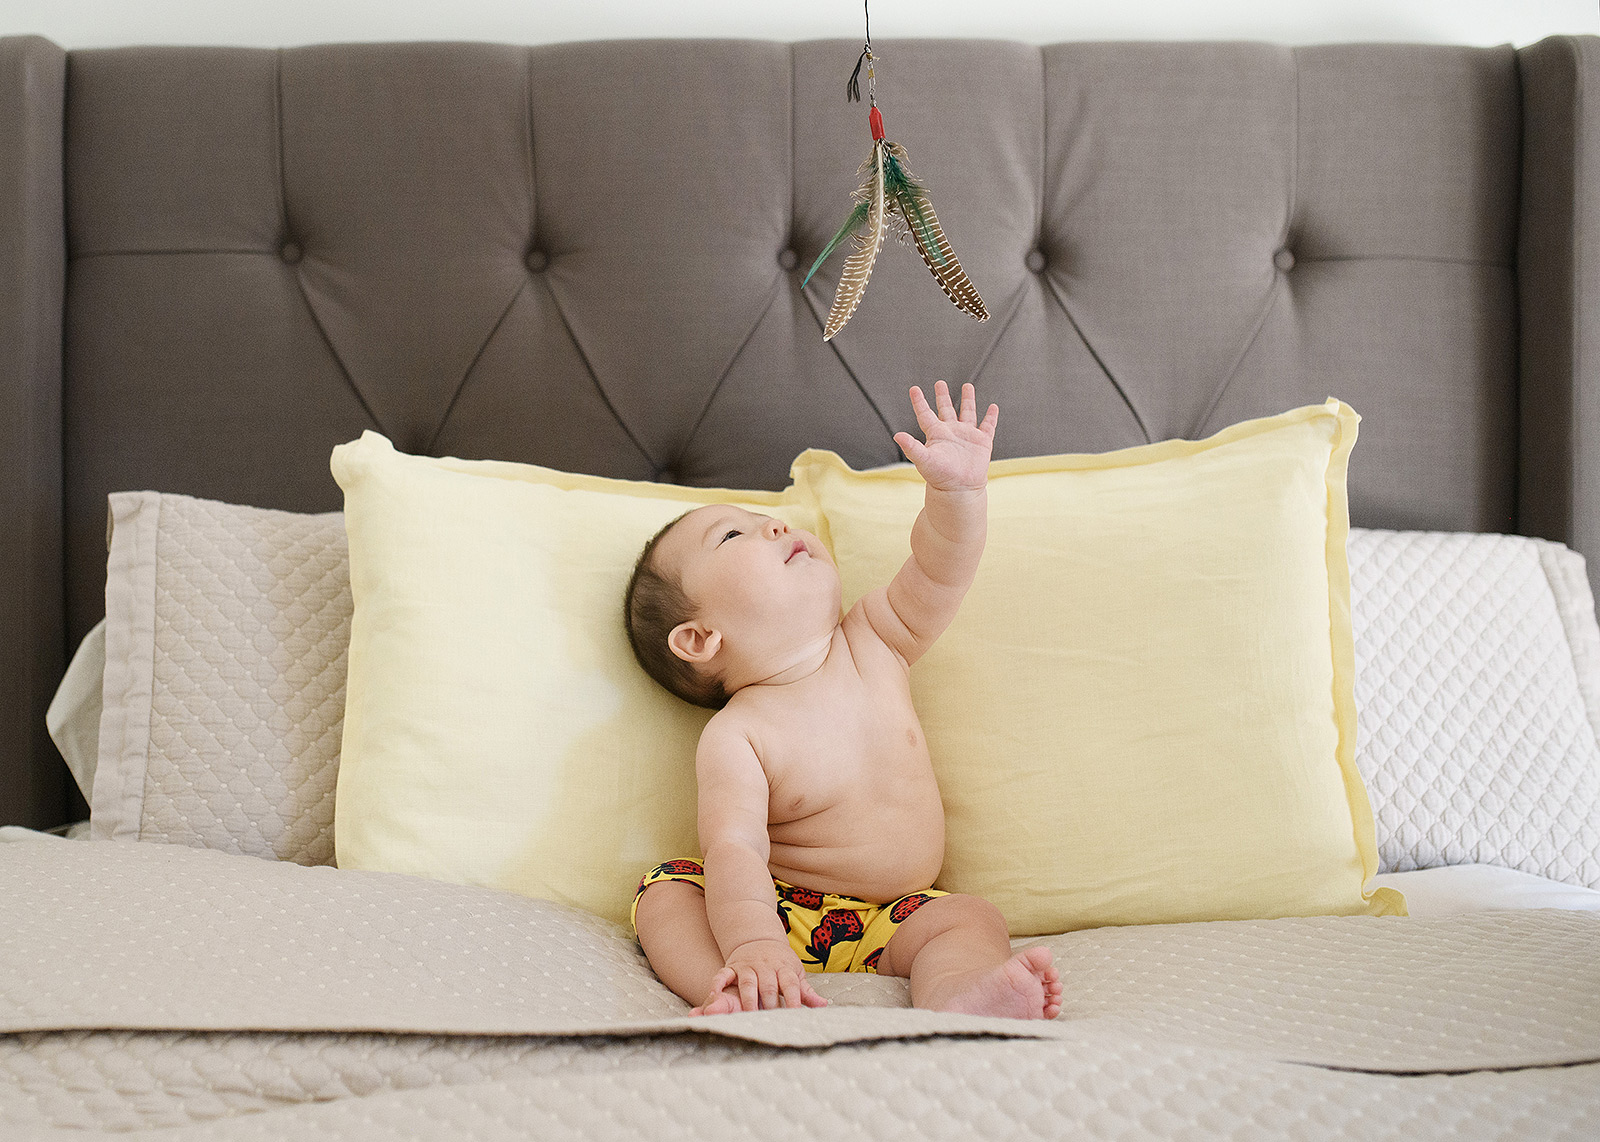 6 month baby playing with fishing lure on bed with gray headboard lifestyle session